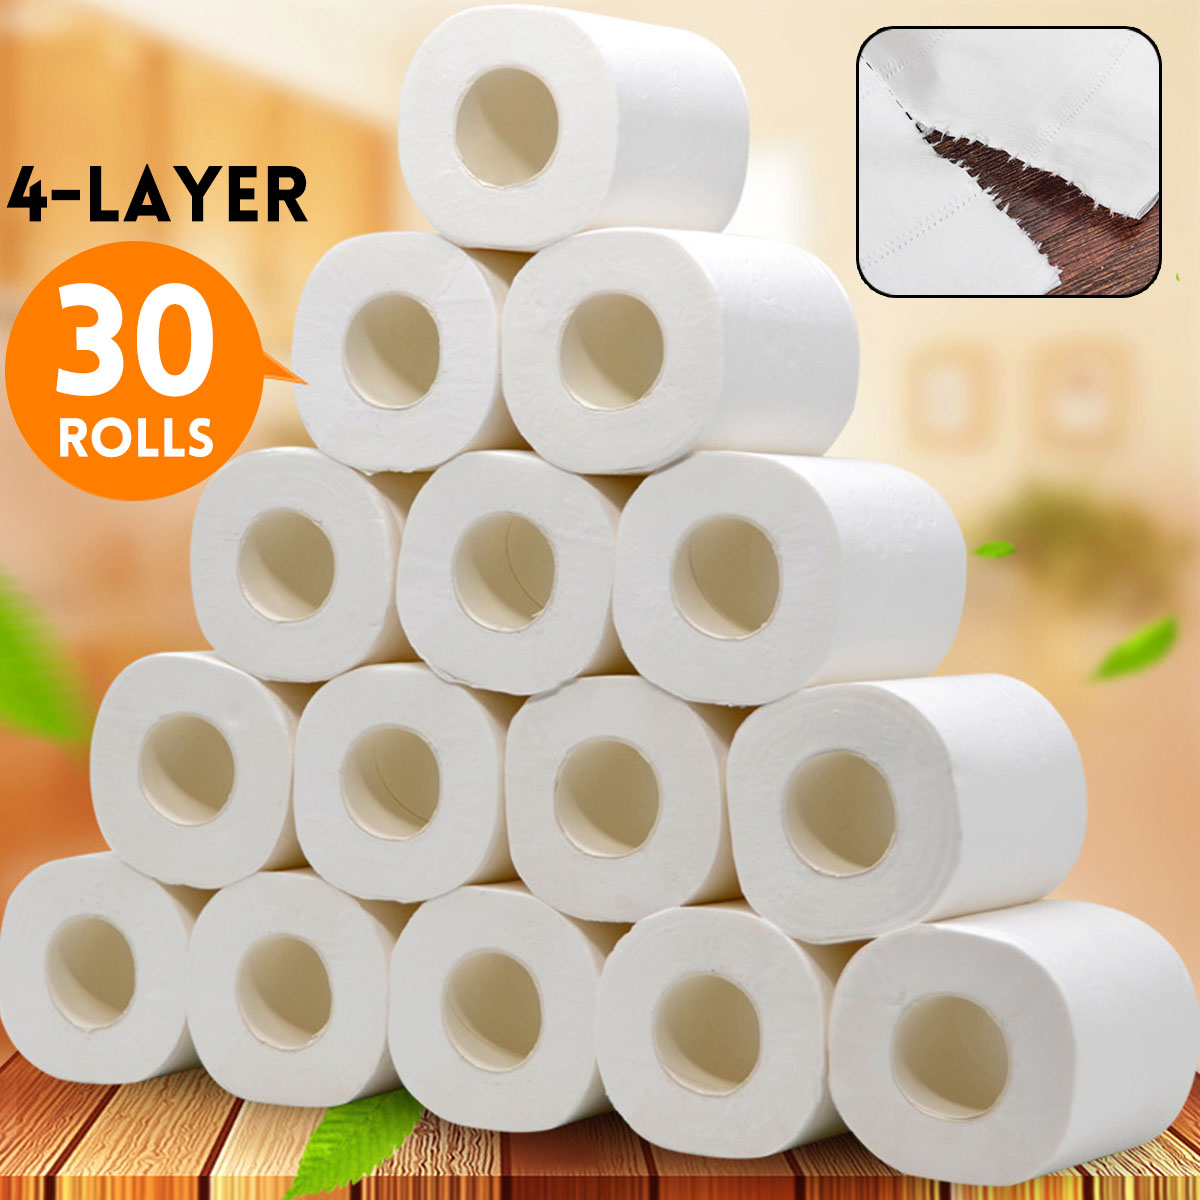 30pcs Roll Top Quality Roller Toilet Paper 4 Layer Native Wood Pulp Soft Paper Home Bathroom Rolling Tissue Paper Dropshipping